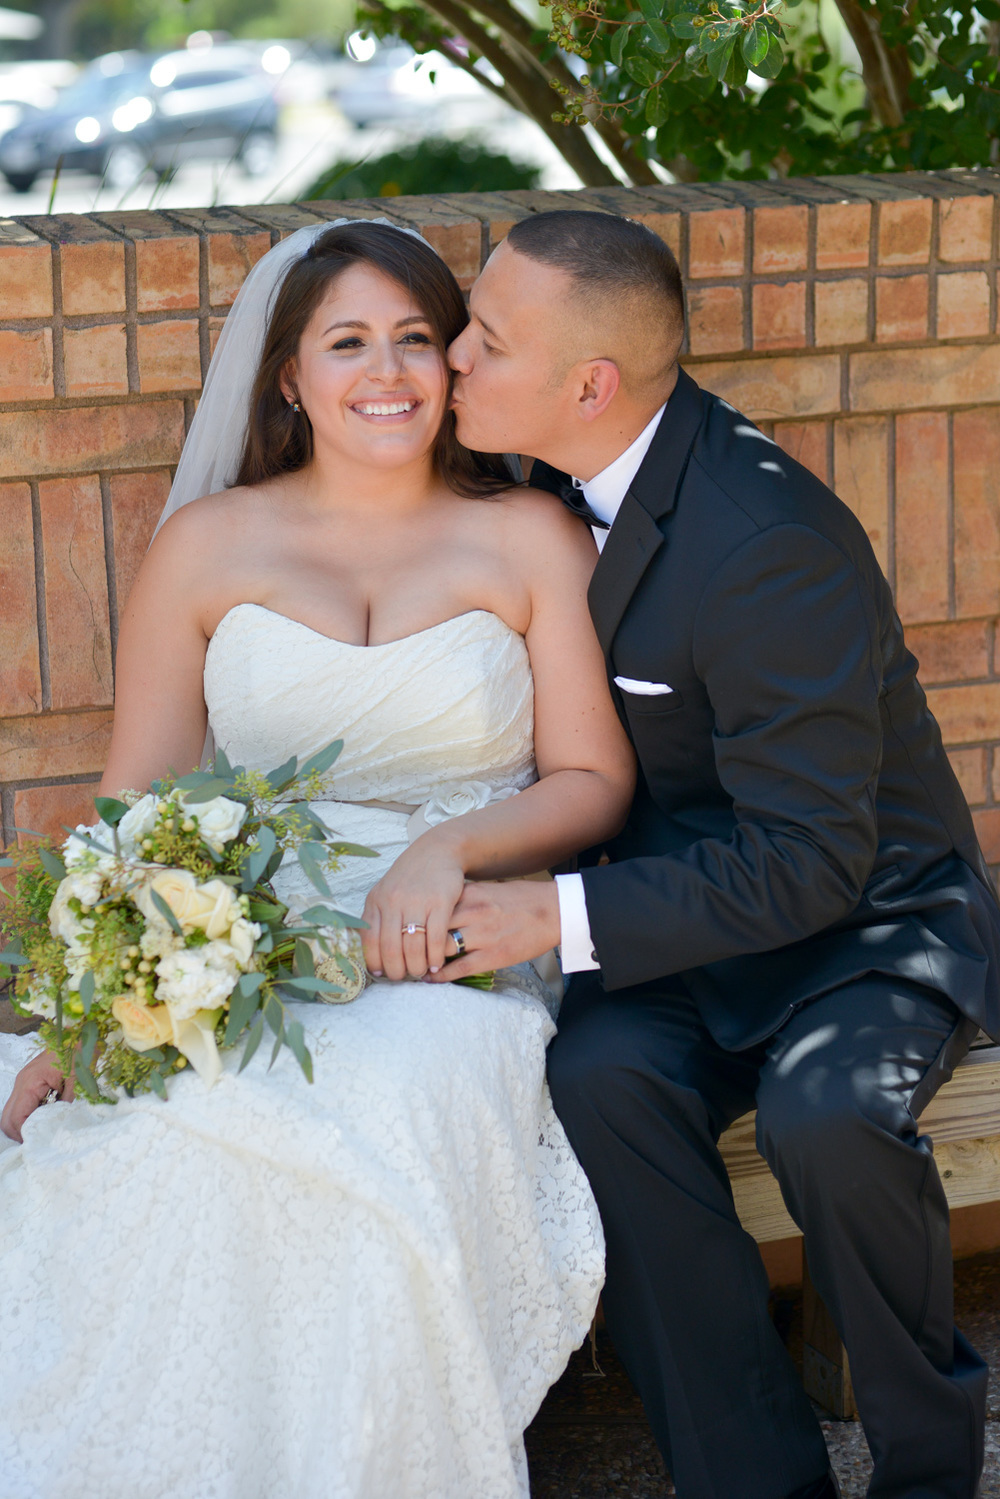 Austin-wedding-photography-texas-selma-kiss-02